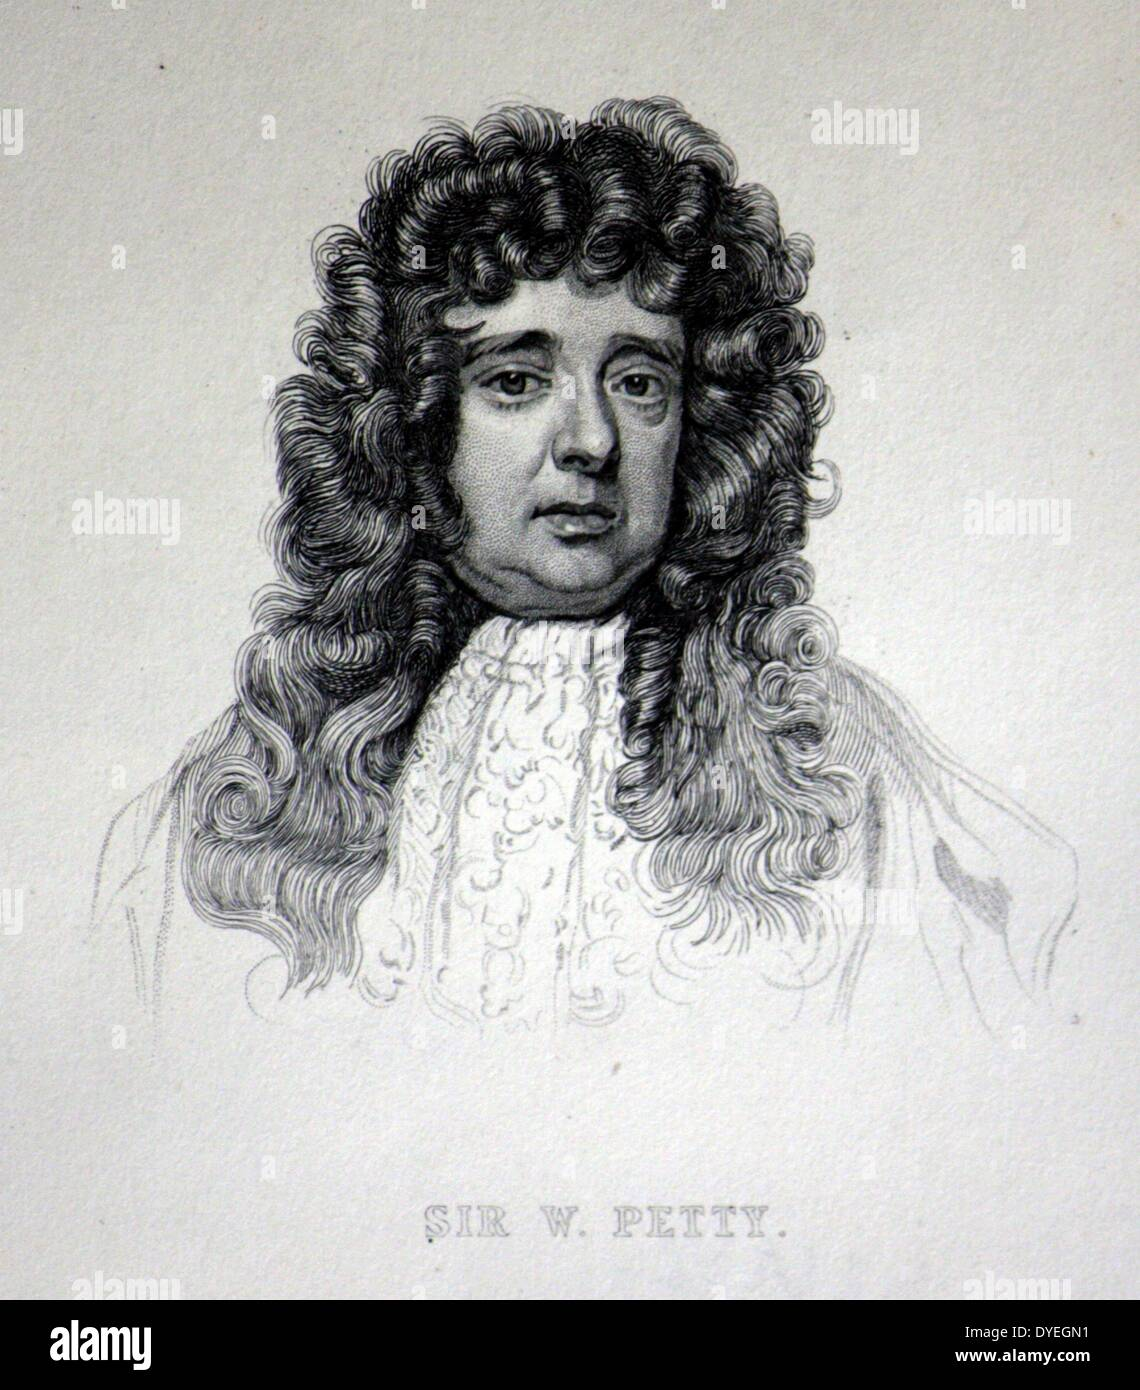 Sir William Petty (1623-1687 A.D.) - Stock Image